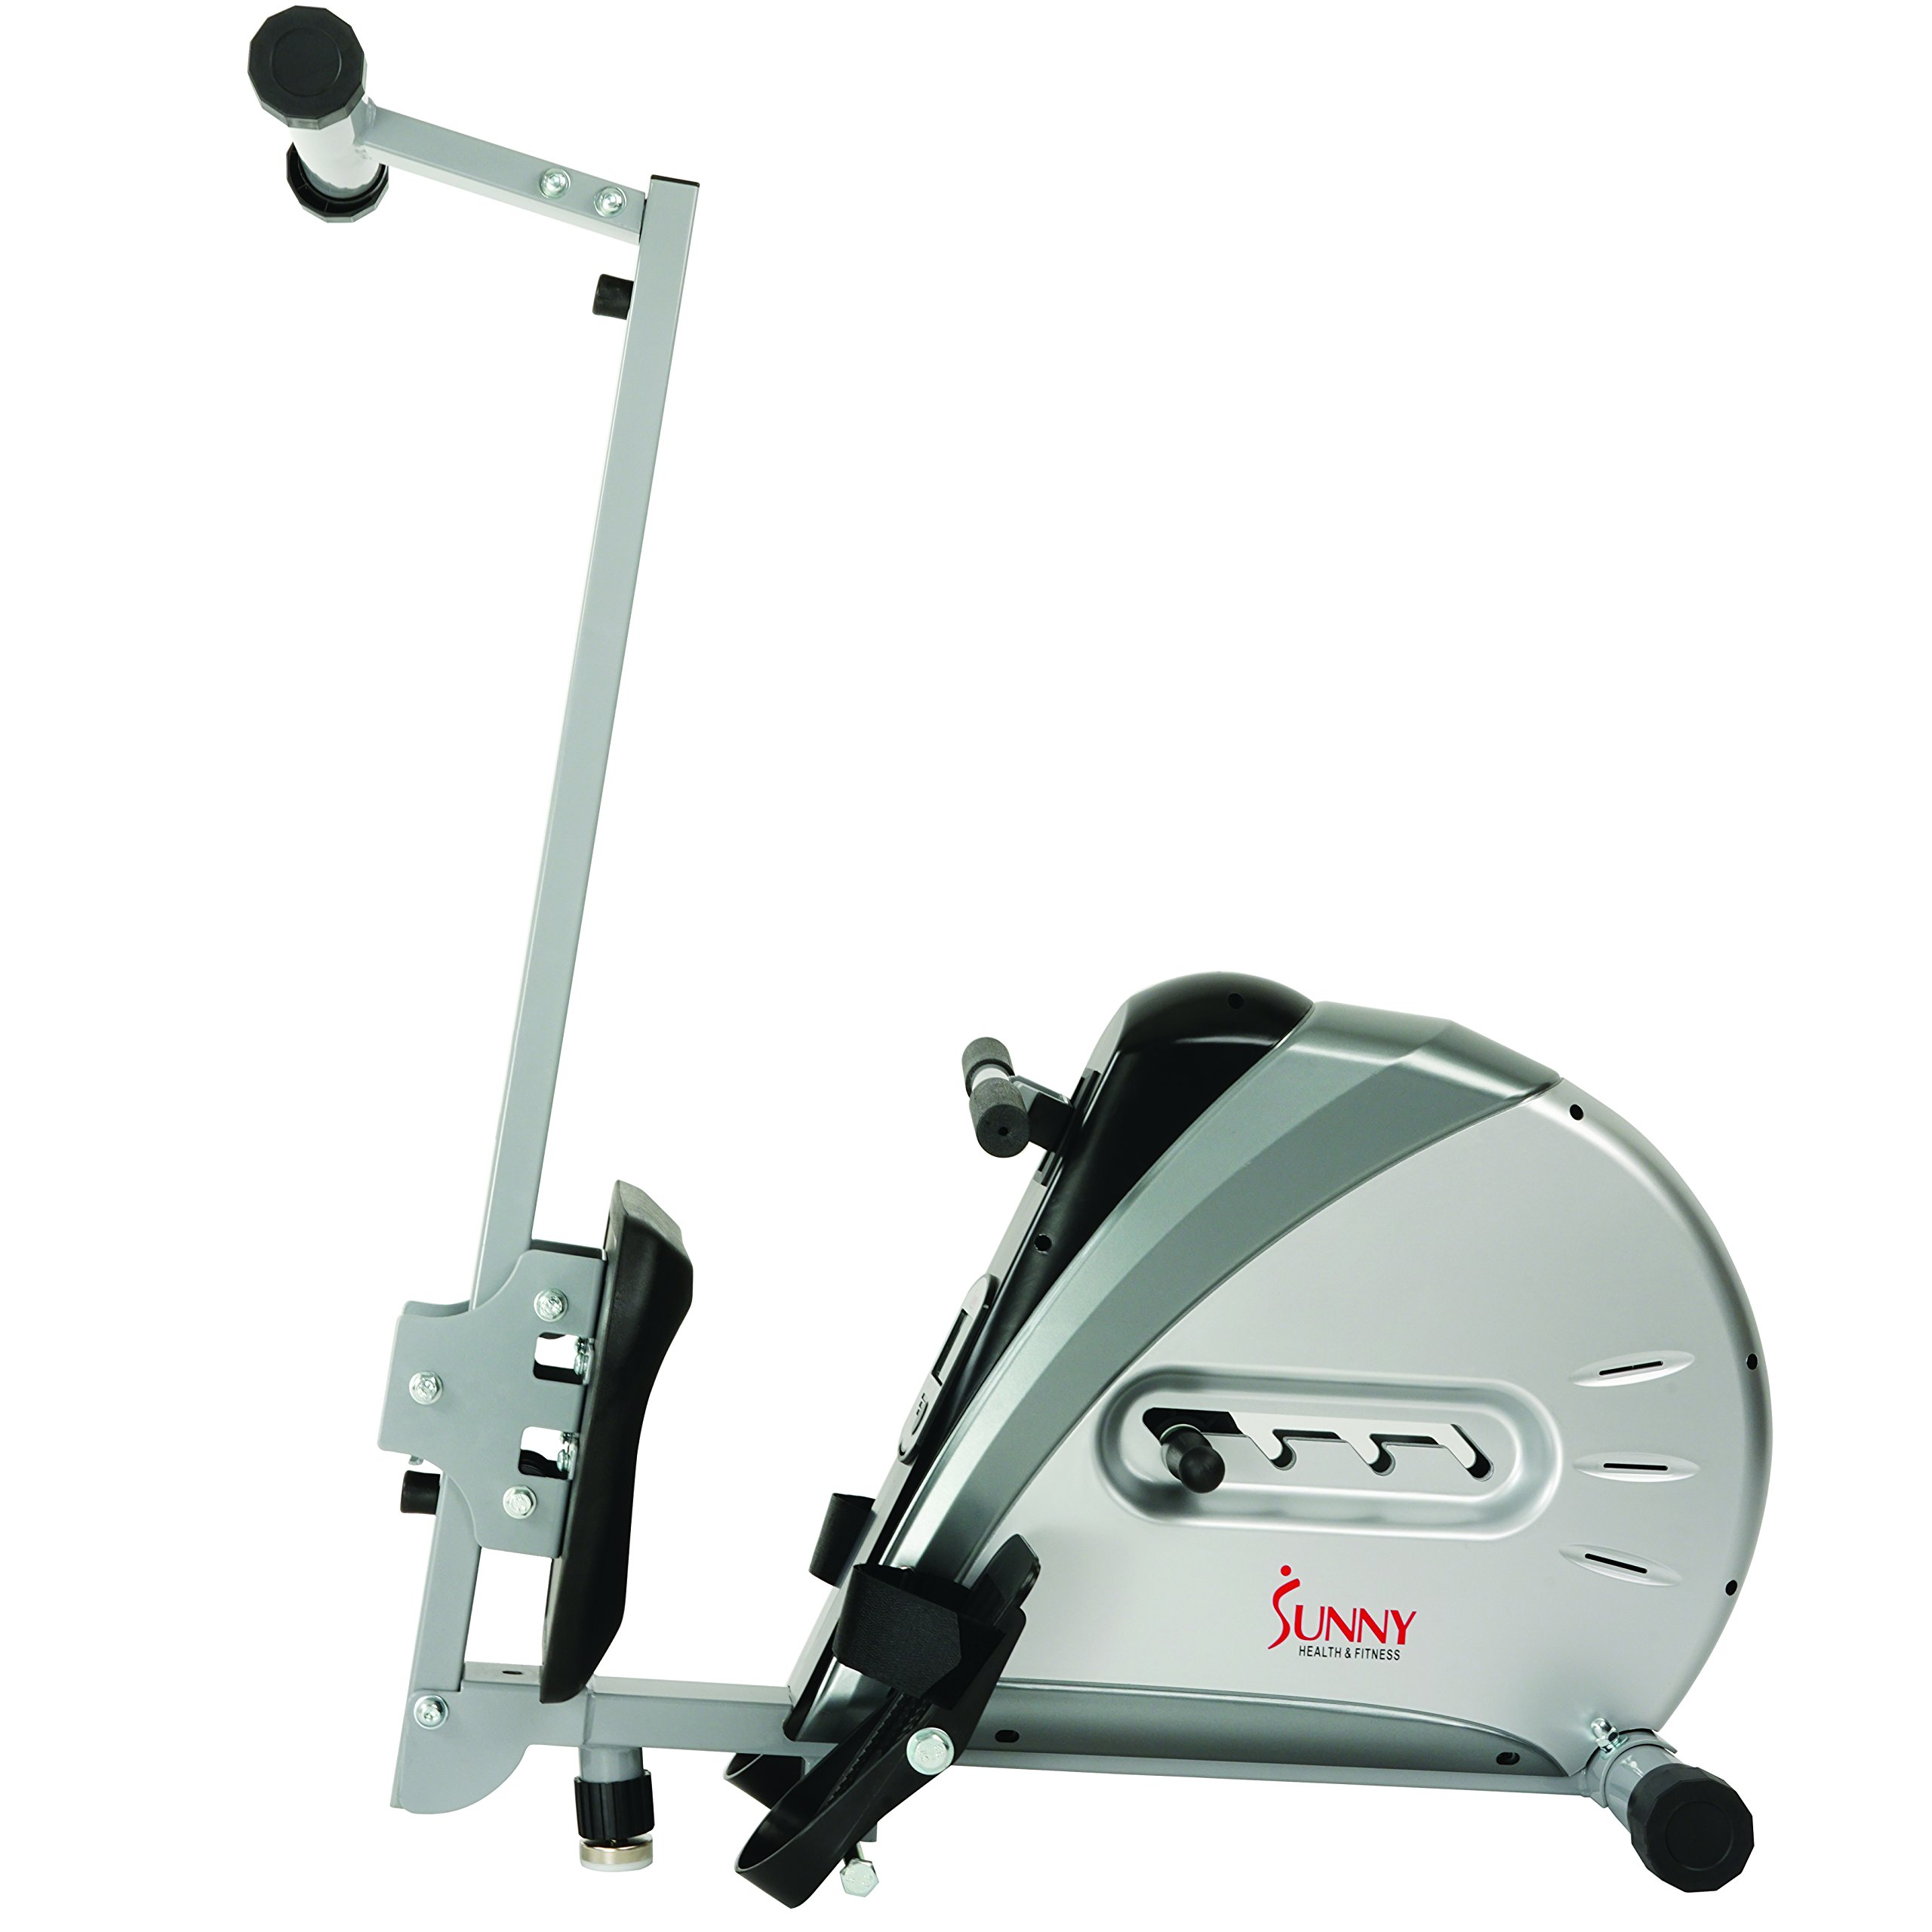 Sunny Health & Fitness Rowing Machine Rower Ergometer with Durable Elastic Cord, Digital Monitor, Inclined Slide Rail and Foldable -  SF-RW5606 by Sunny Health & Fitness (Image #6)